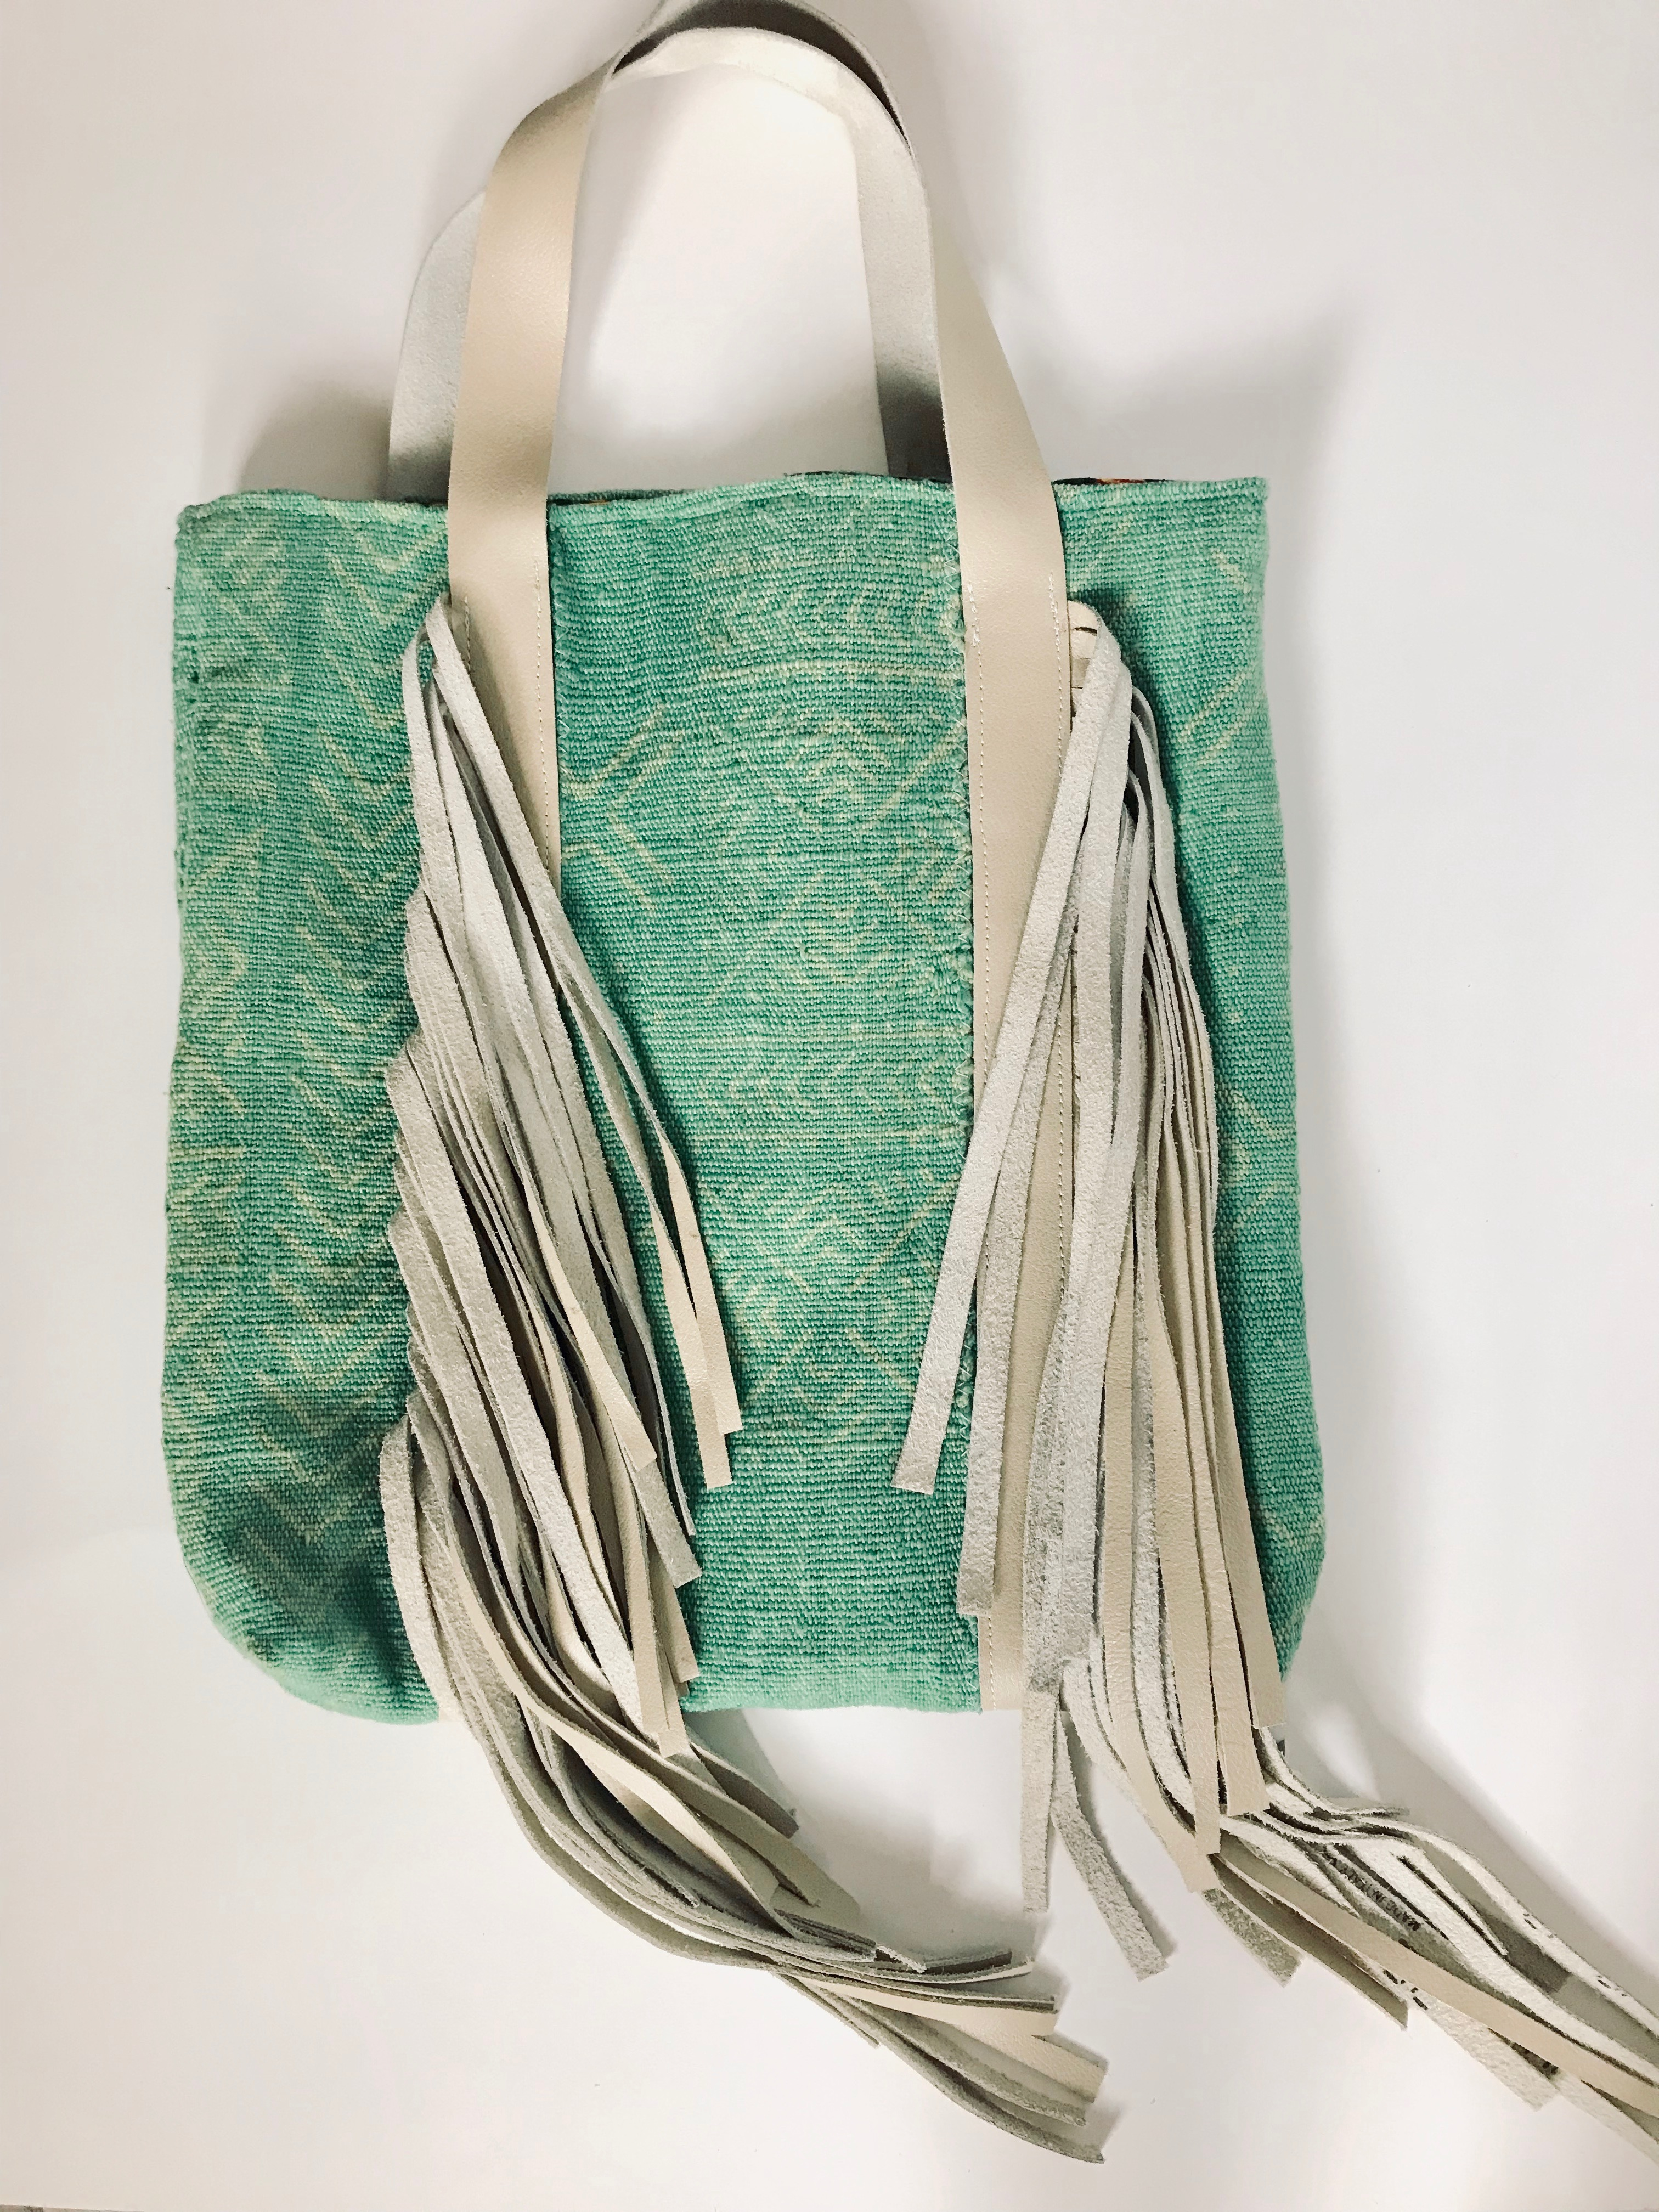 Kravitz Tote in Green Mudcloth